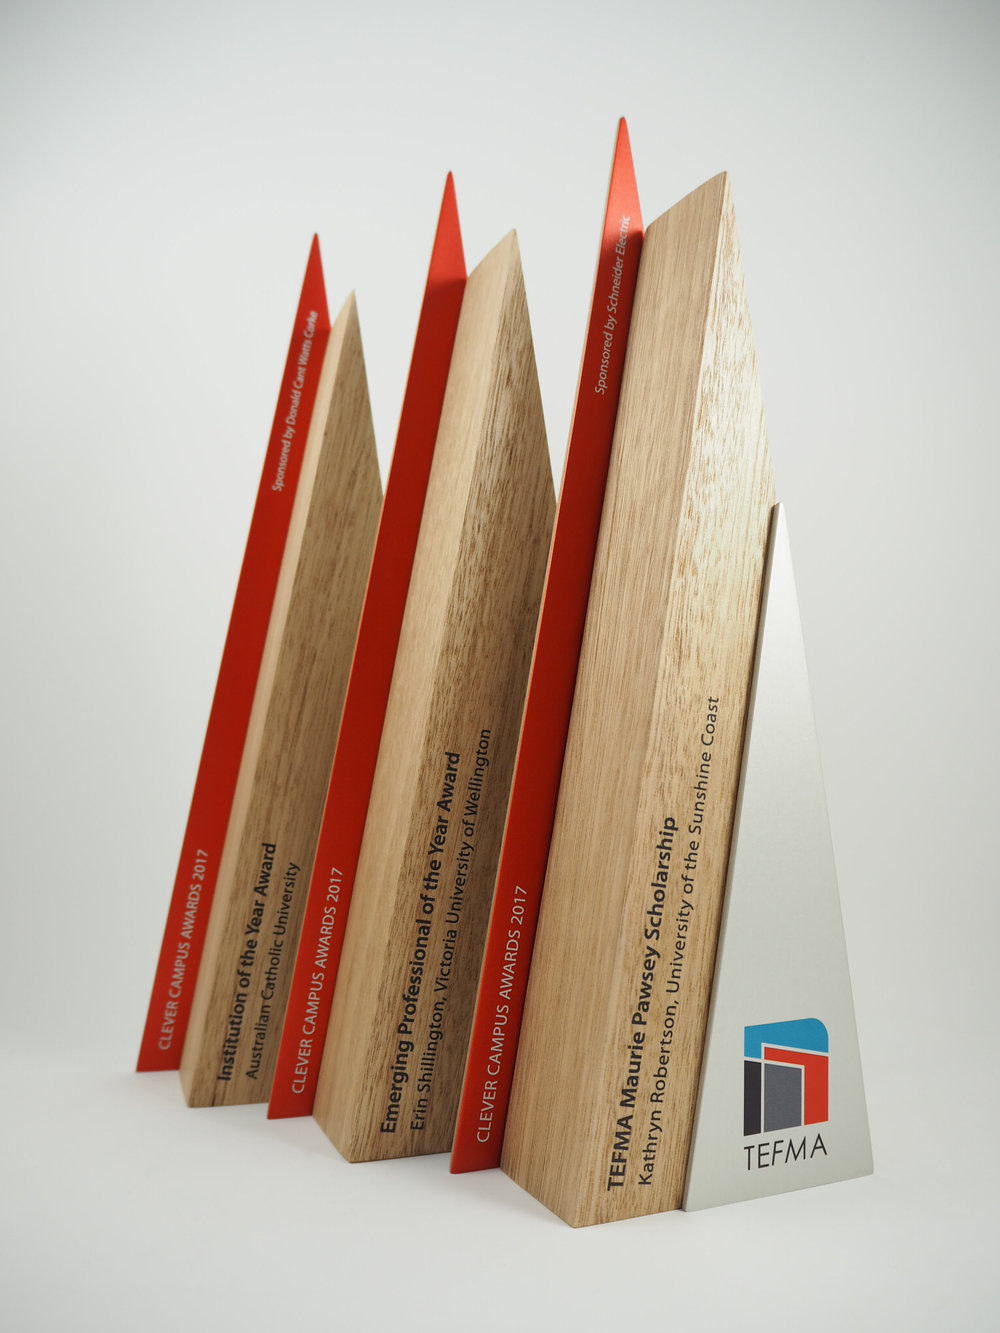 tefma-awards-timber-eco-aluminium-trophy-01.jpg